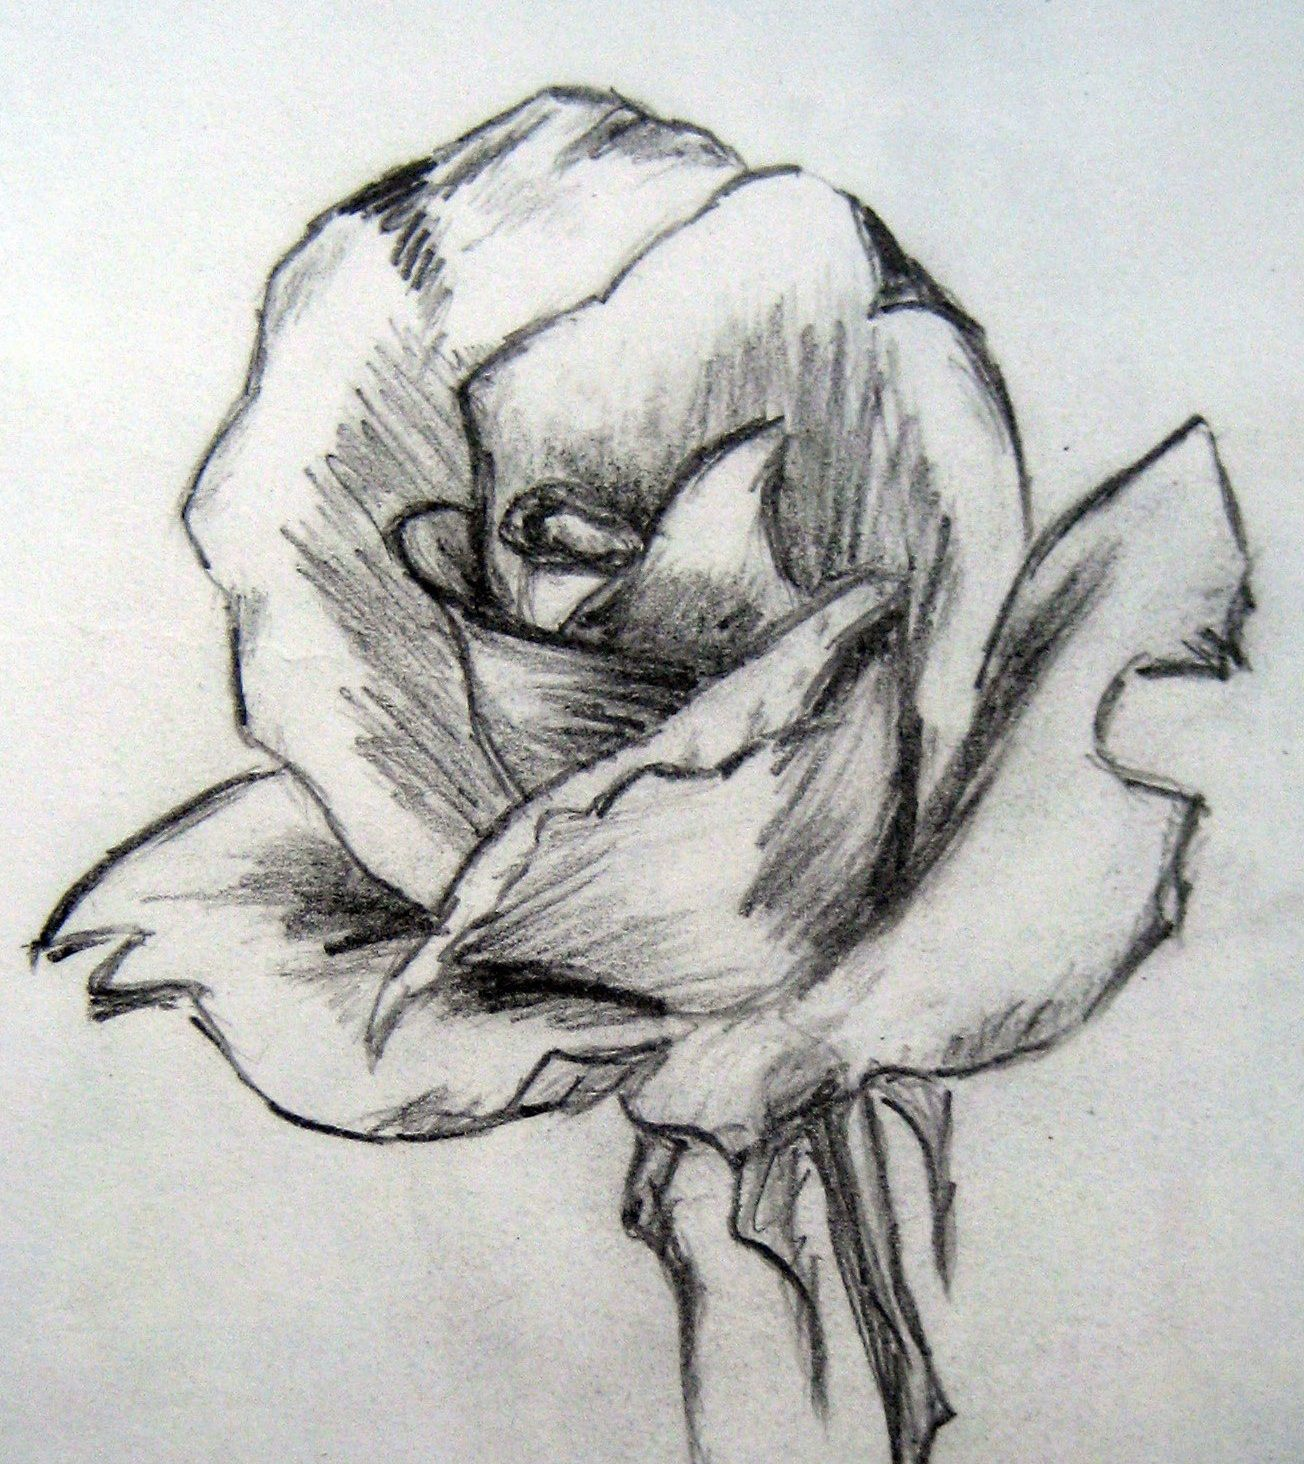 Pencil Sketch Art Pencil Sketch